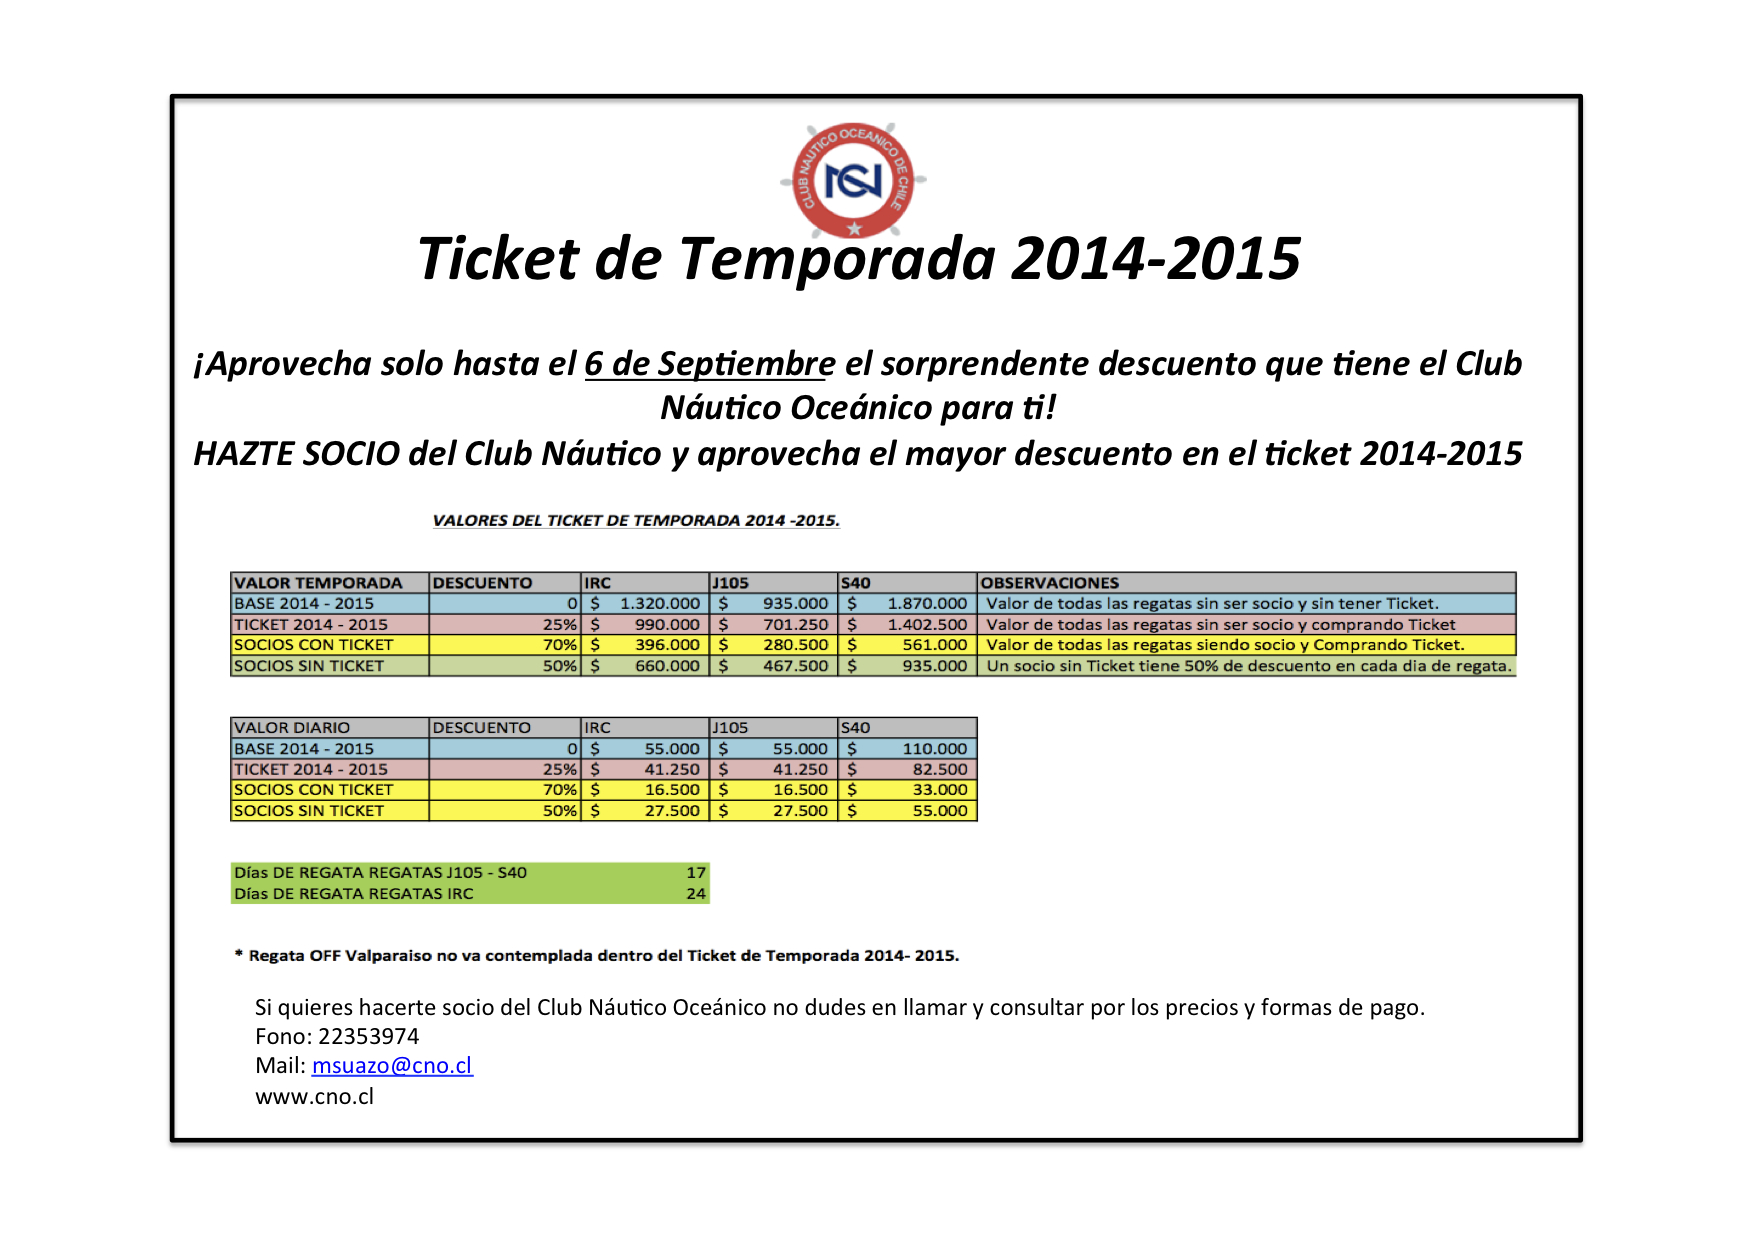 Ticket de Temporada-jpg